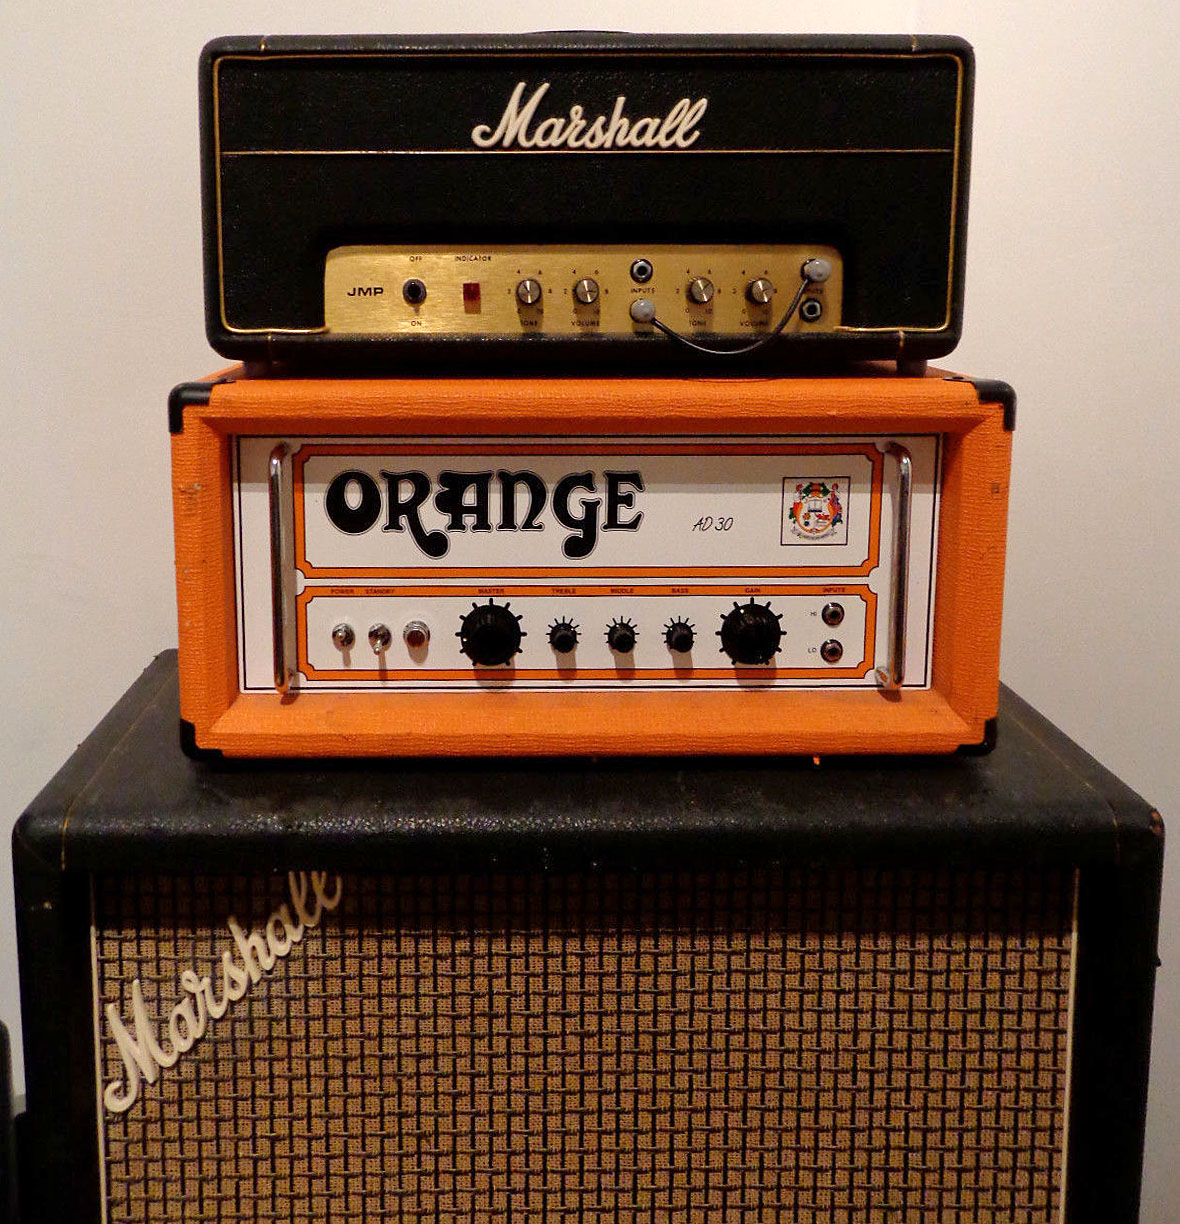 Dating marshall amplifiers